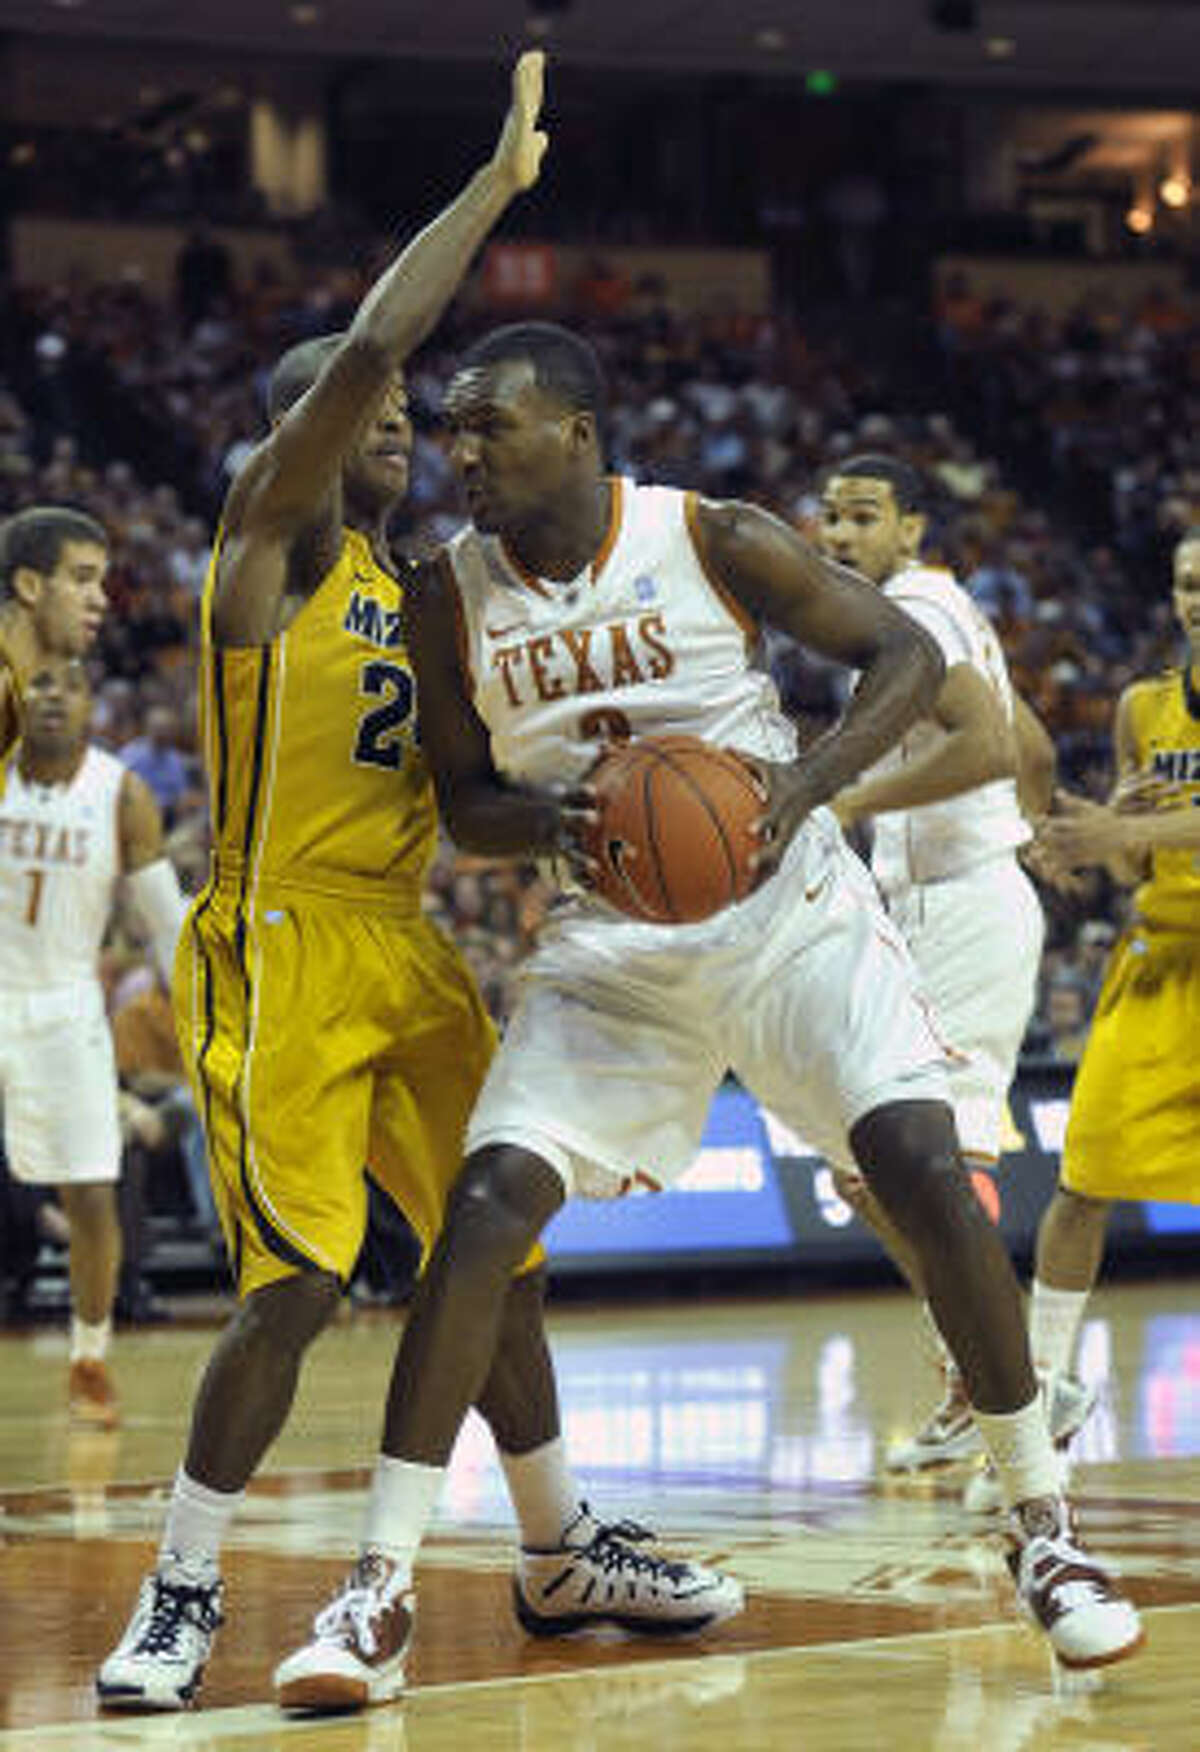 Texas forward Jordan Hamilton, right, drives to the basket against Missouri guard Kim English during the first half. Hamilton had a game-high 16 points and 13 rebounds.